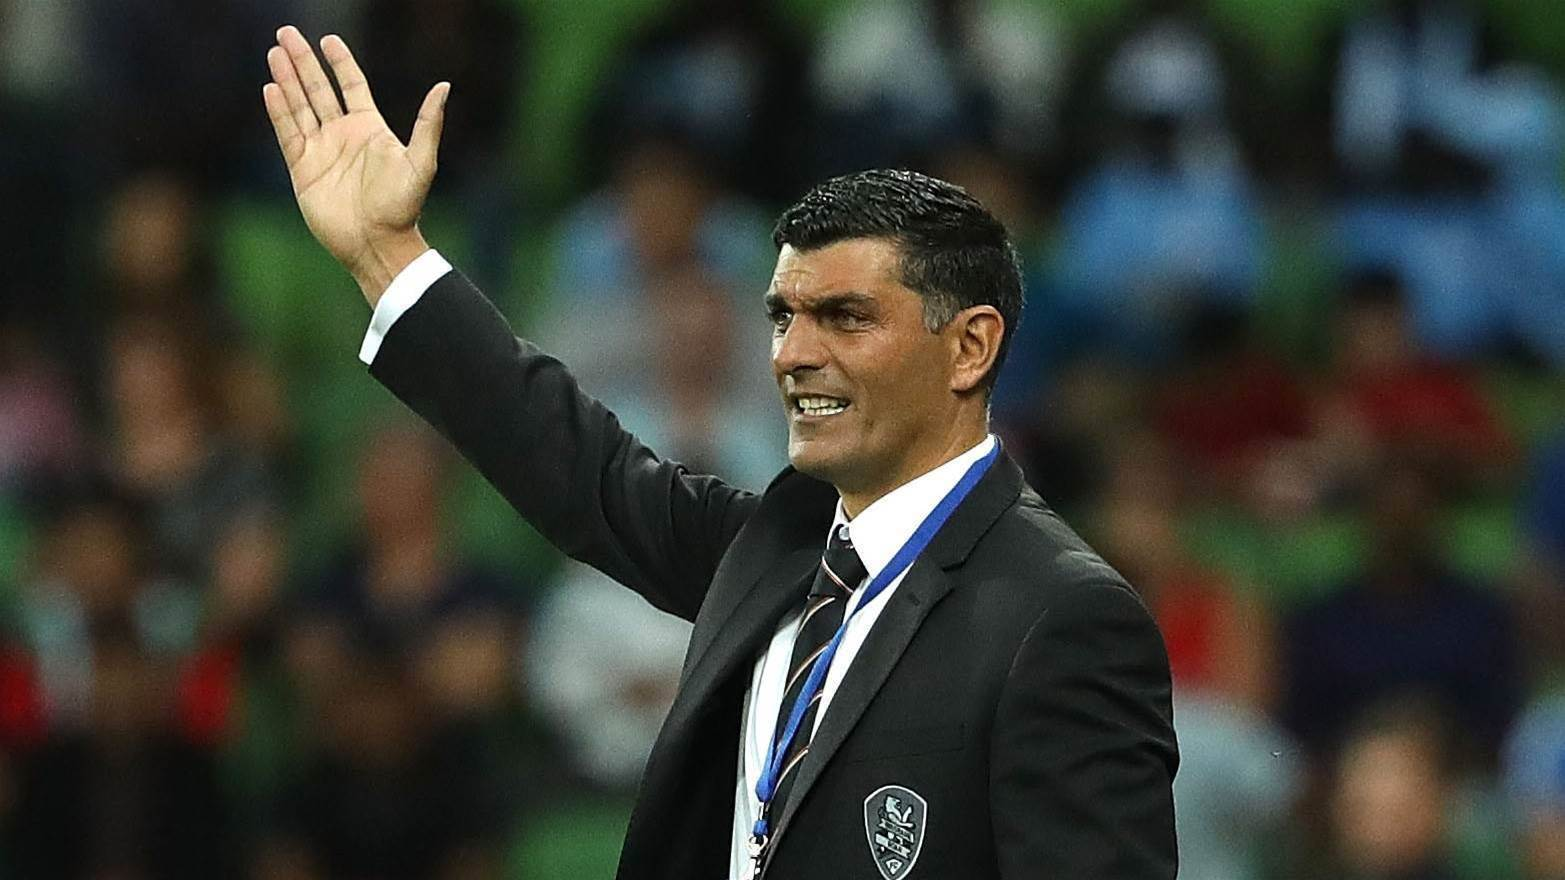 Aloisi: Travel weary Roar 'lacked zip'